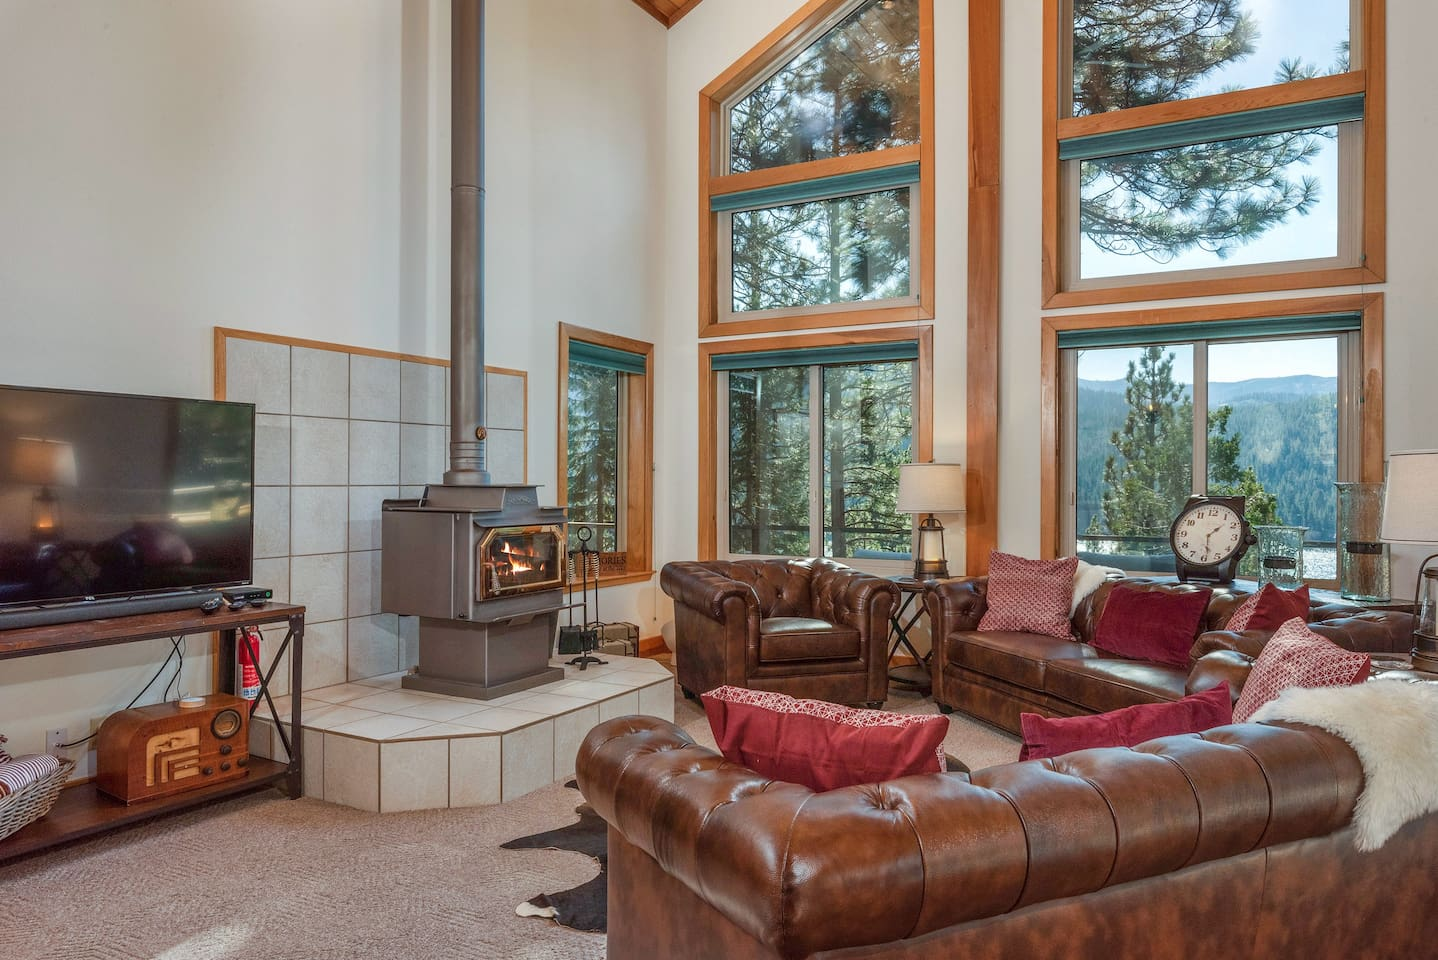 Welcome to Donner Lake! Your rental is professionally managed by TurnKey Vacation Rentals.